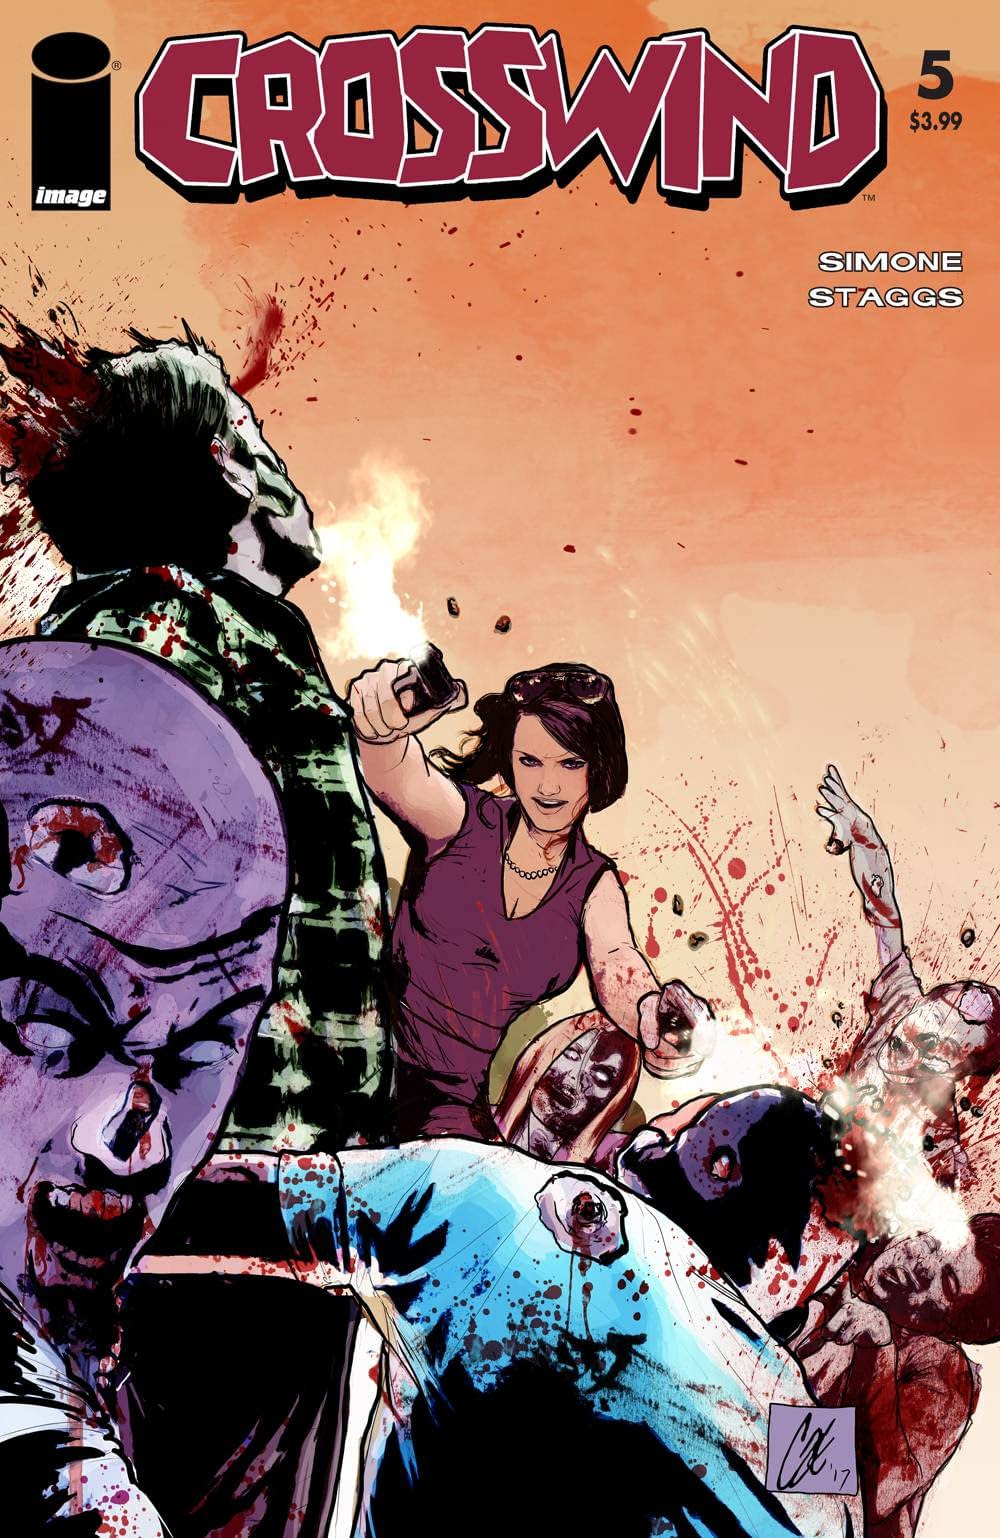 McFarlane's Spawn And 30 More Walking Dead Themed Variants For Image Comics In October